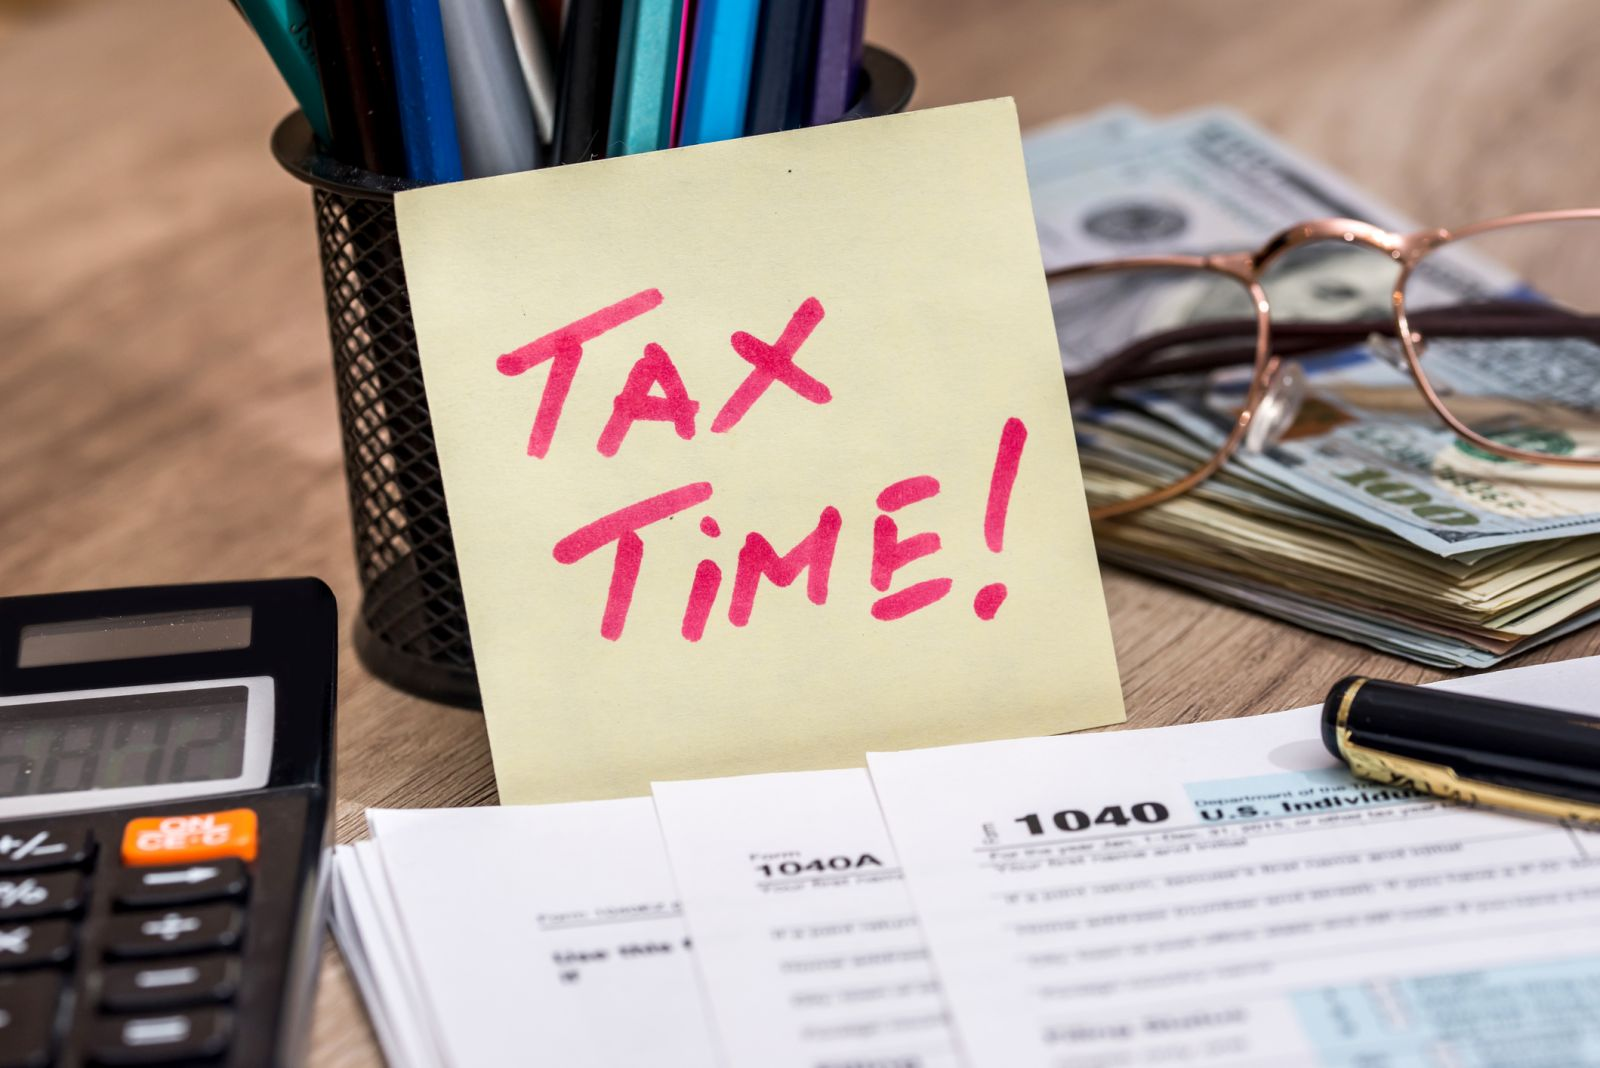 Assisting Clients with Tax Forms